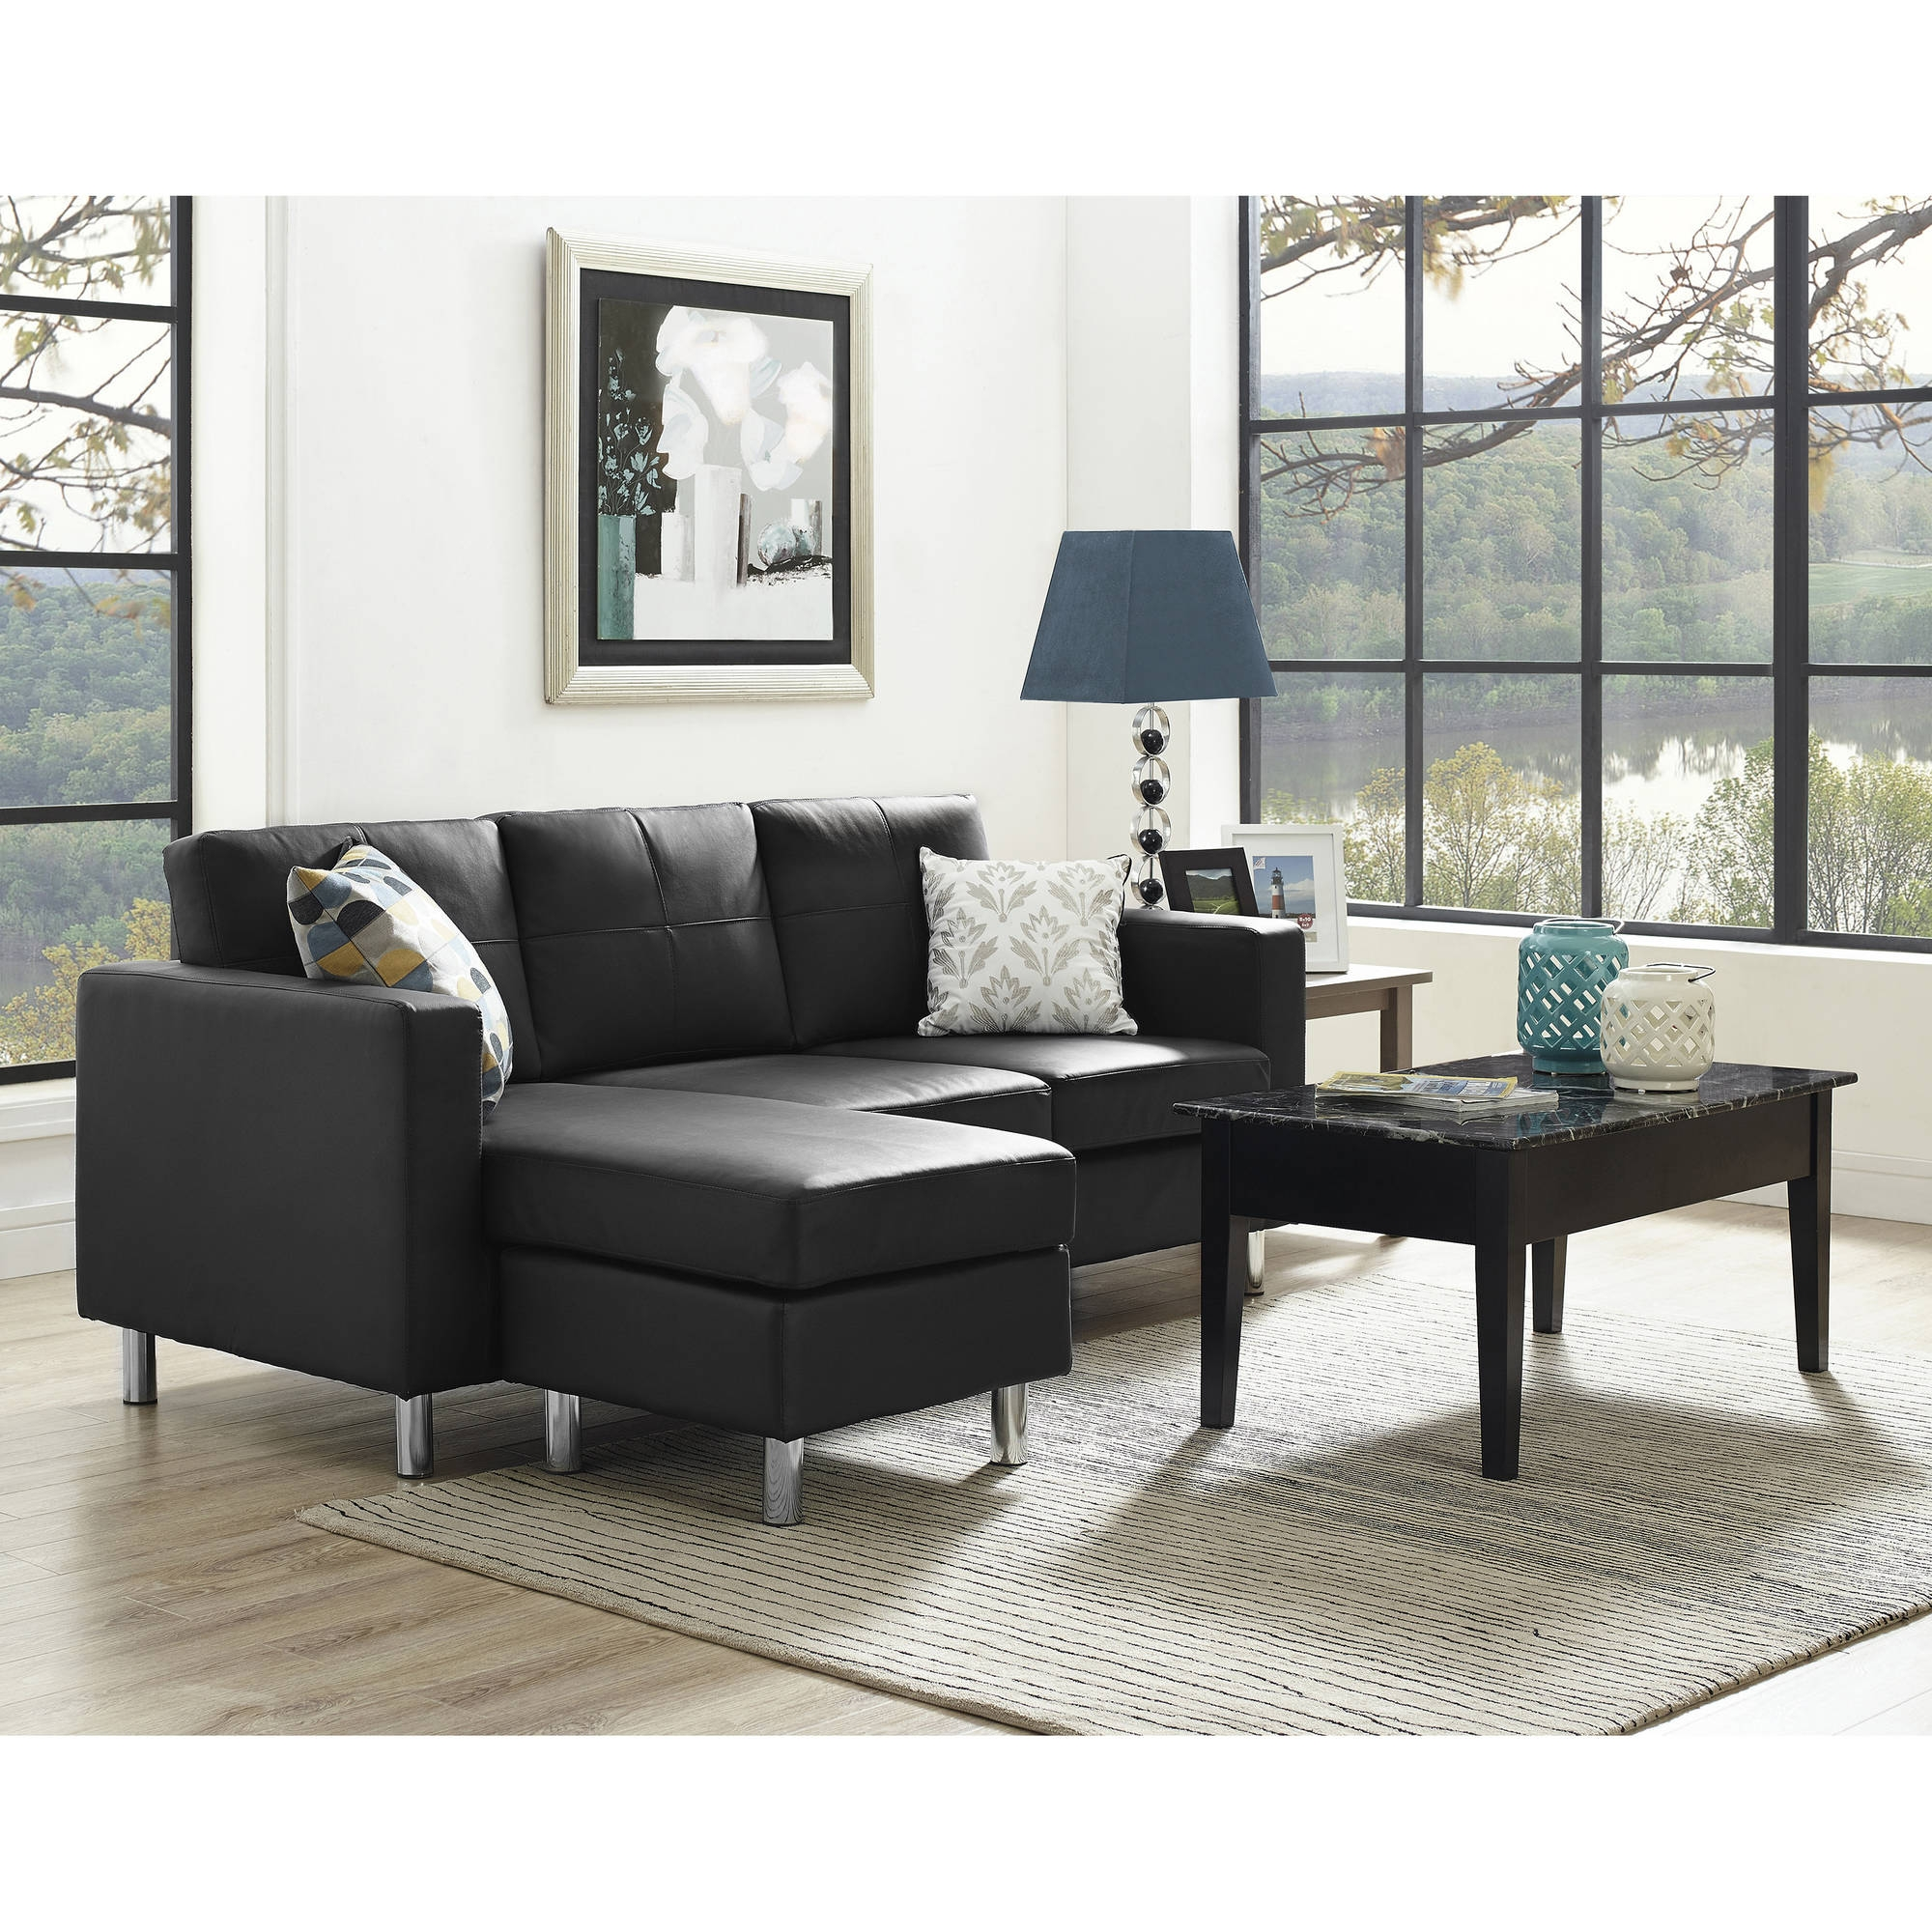 15 Condo Sectional Sofas